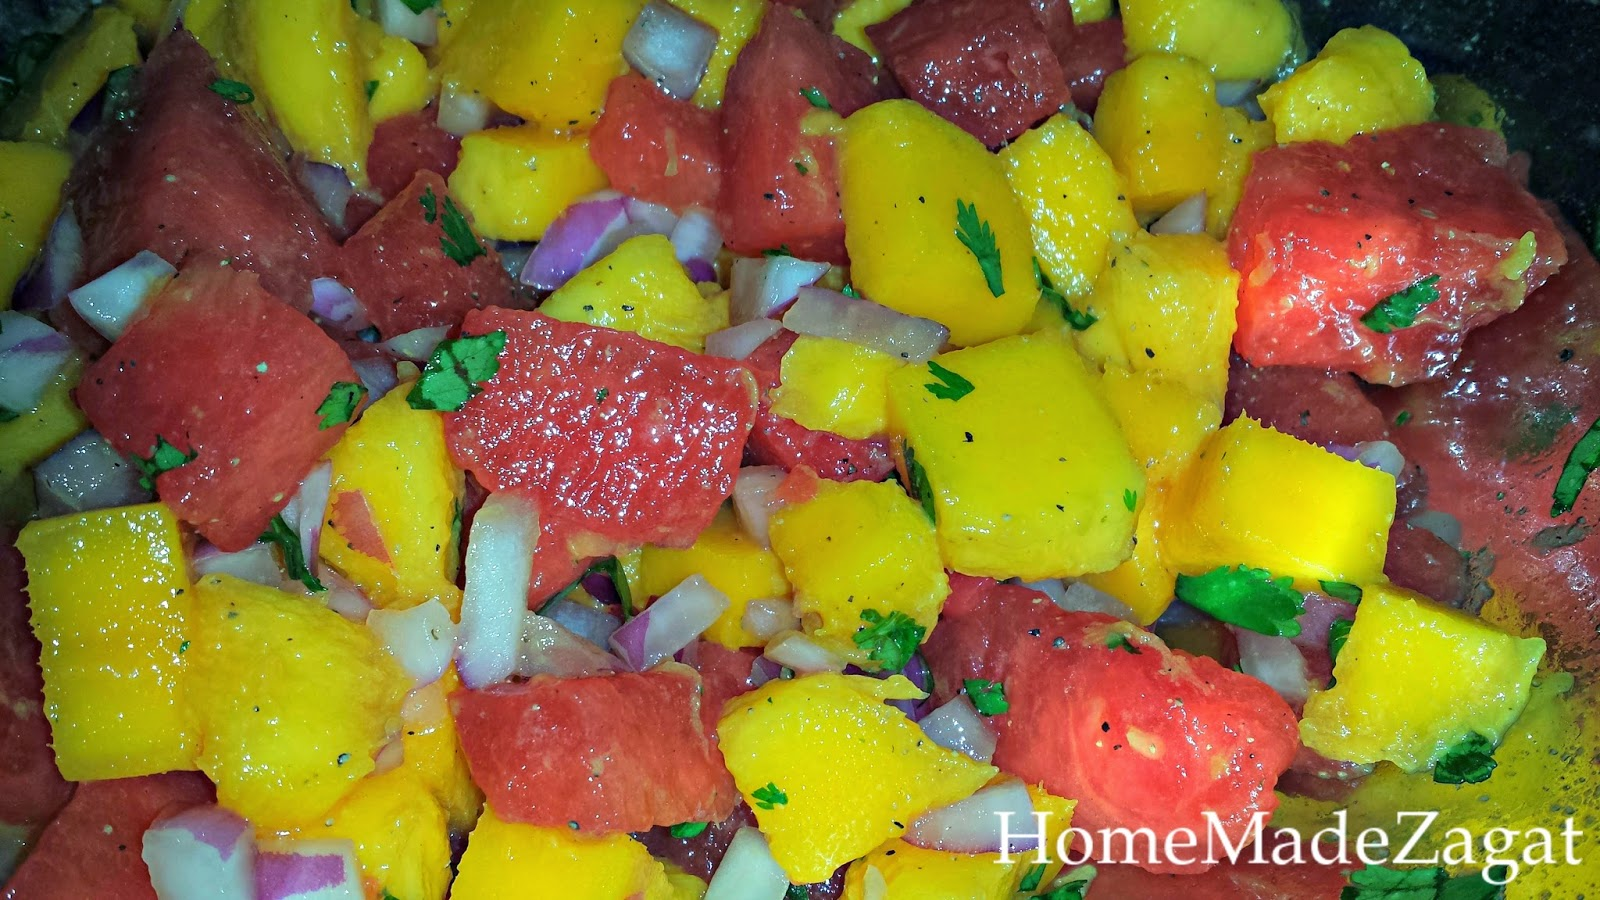 Mango and Watermelon Pico de Gallo